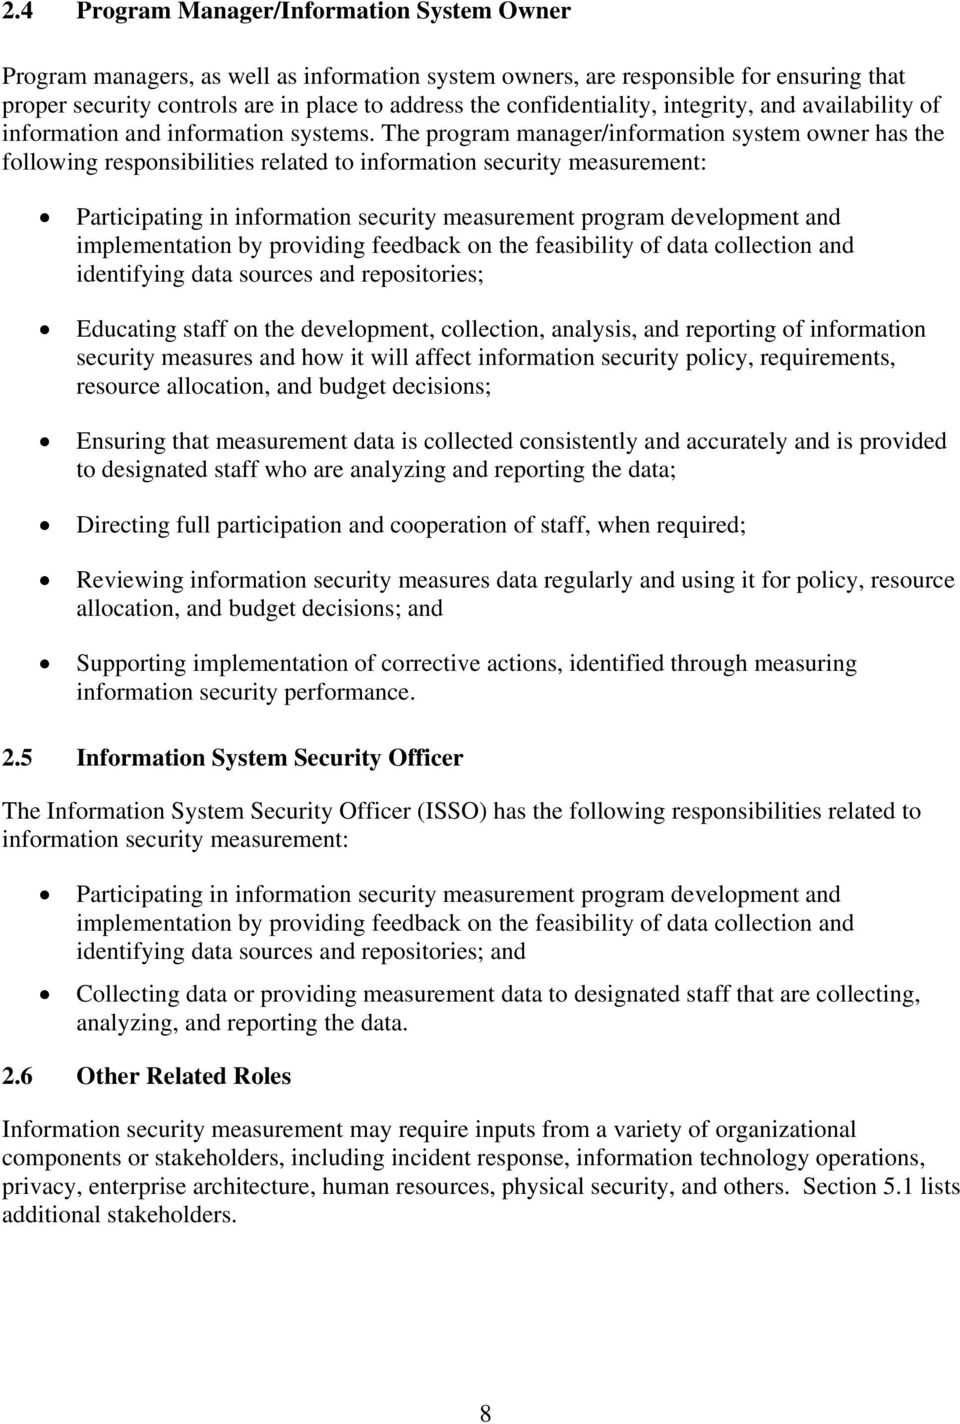 The program manager/information system owner has the following responsibilities related to information security measurement: Participating in information security measurement program development and